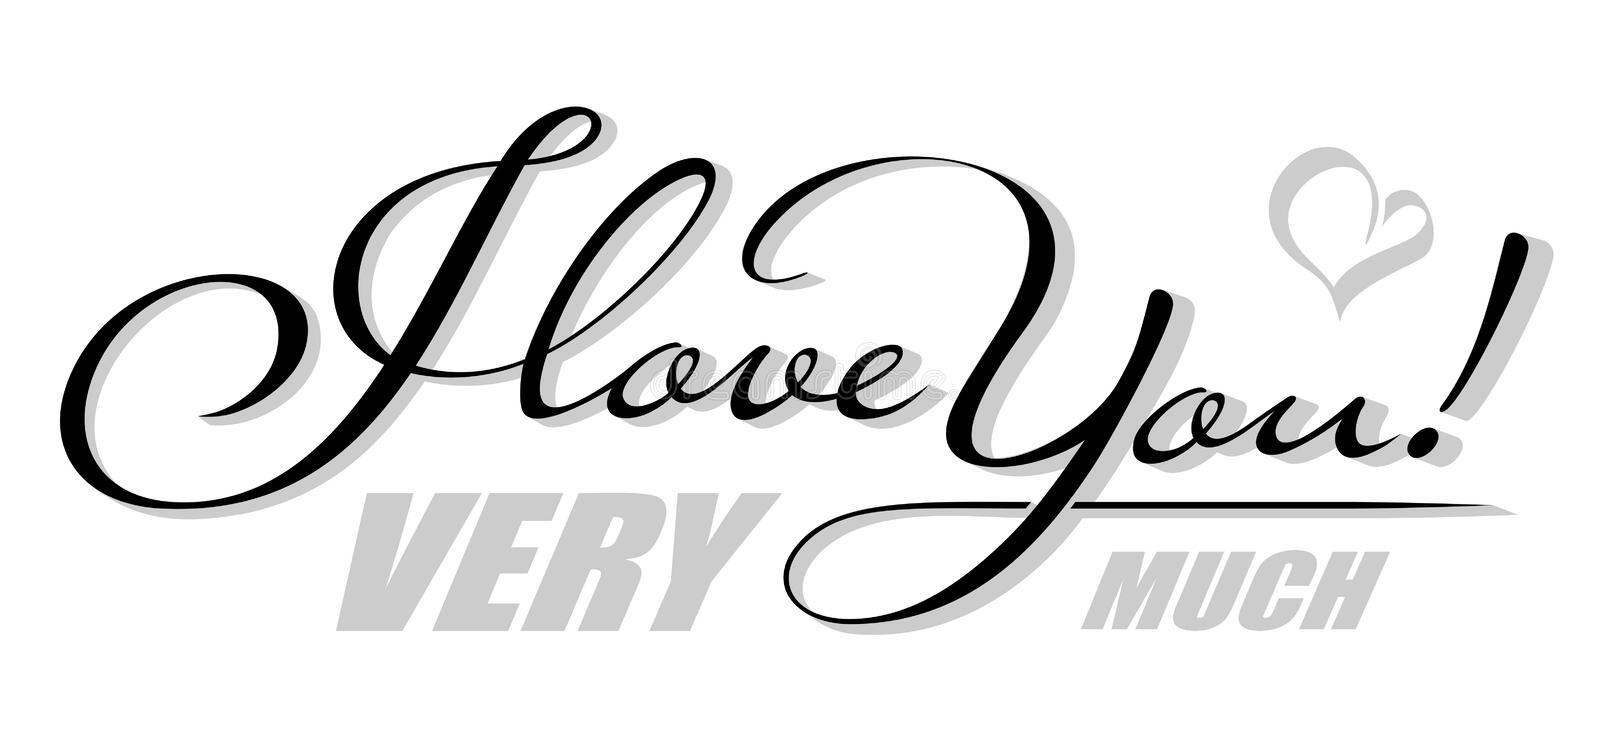 Handwritten isolated text I love You with heart shadow. Hand drawn calligraphy lettering vector illustration